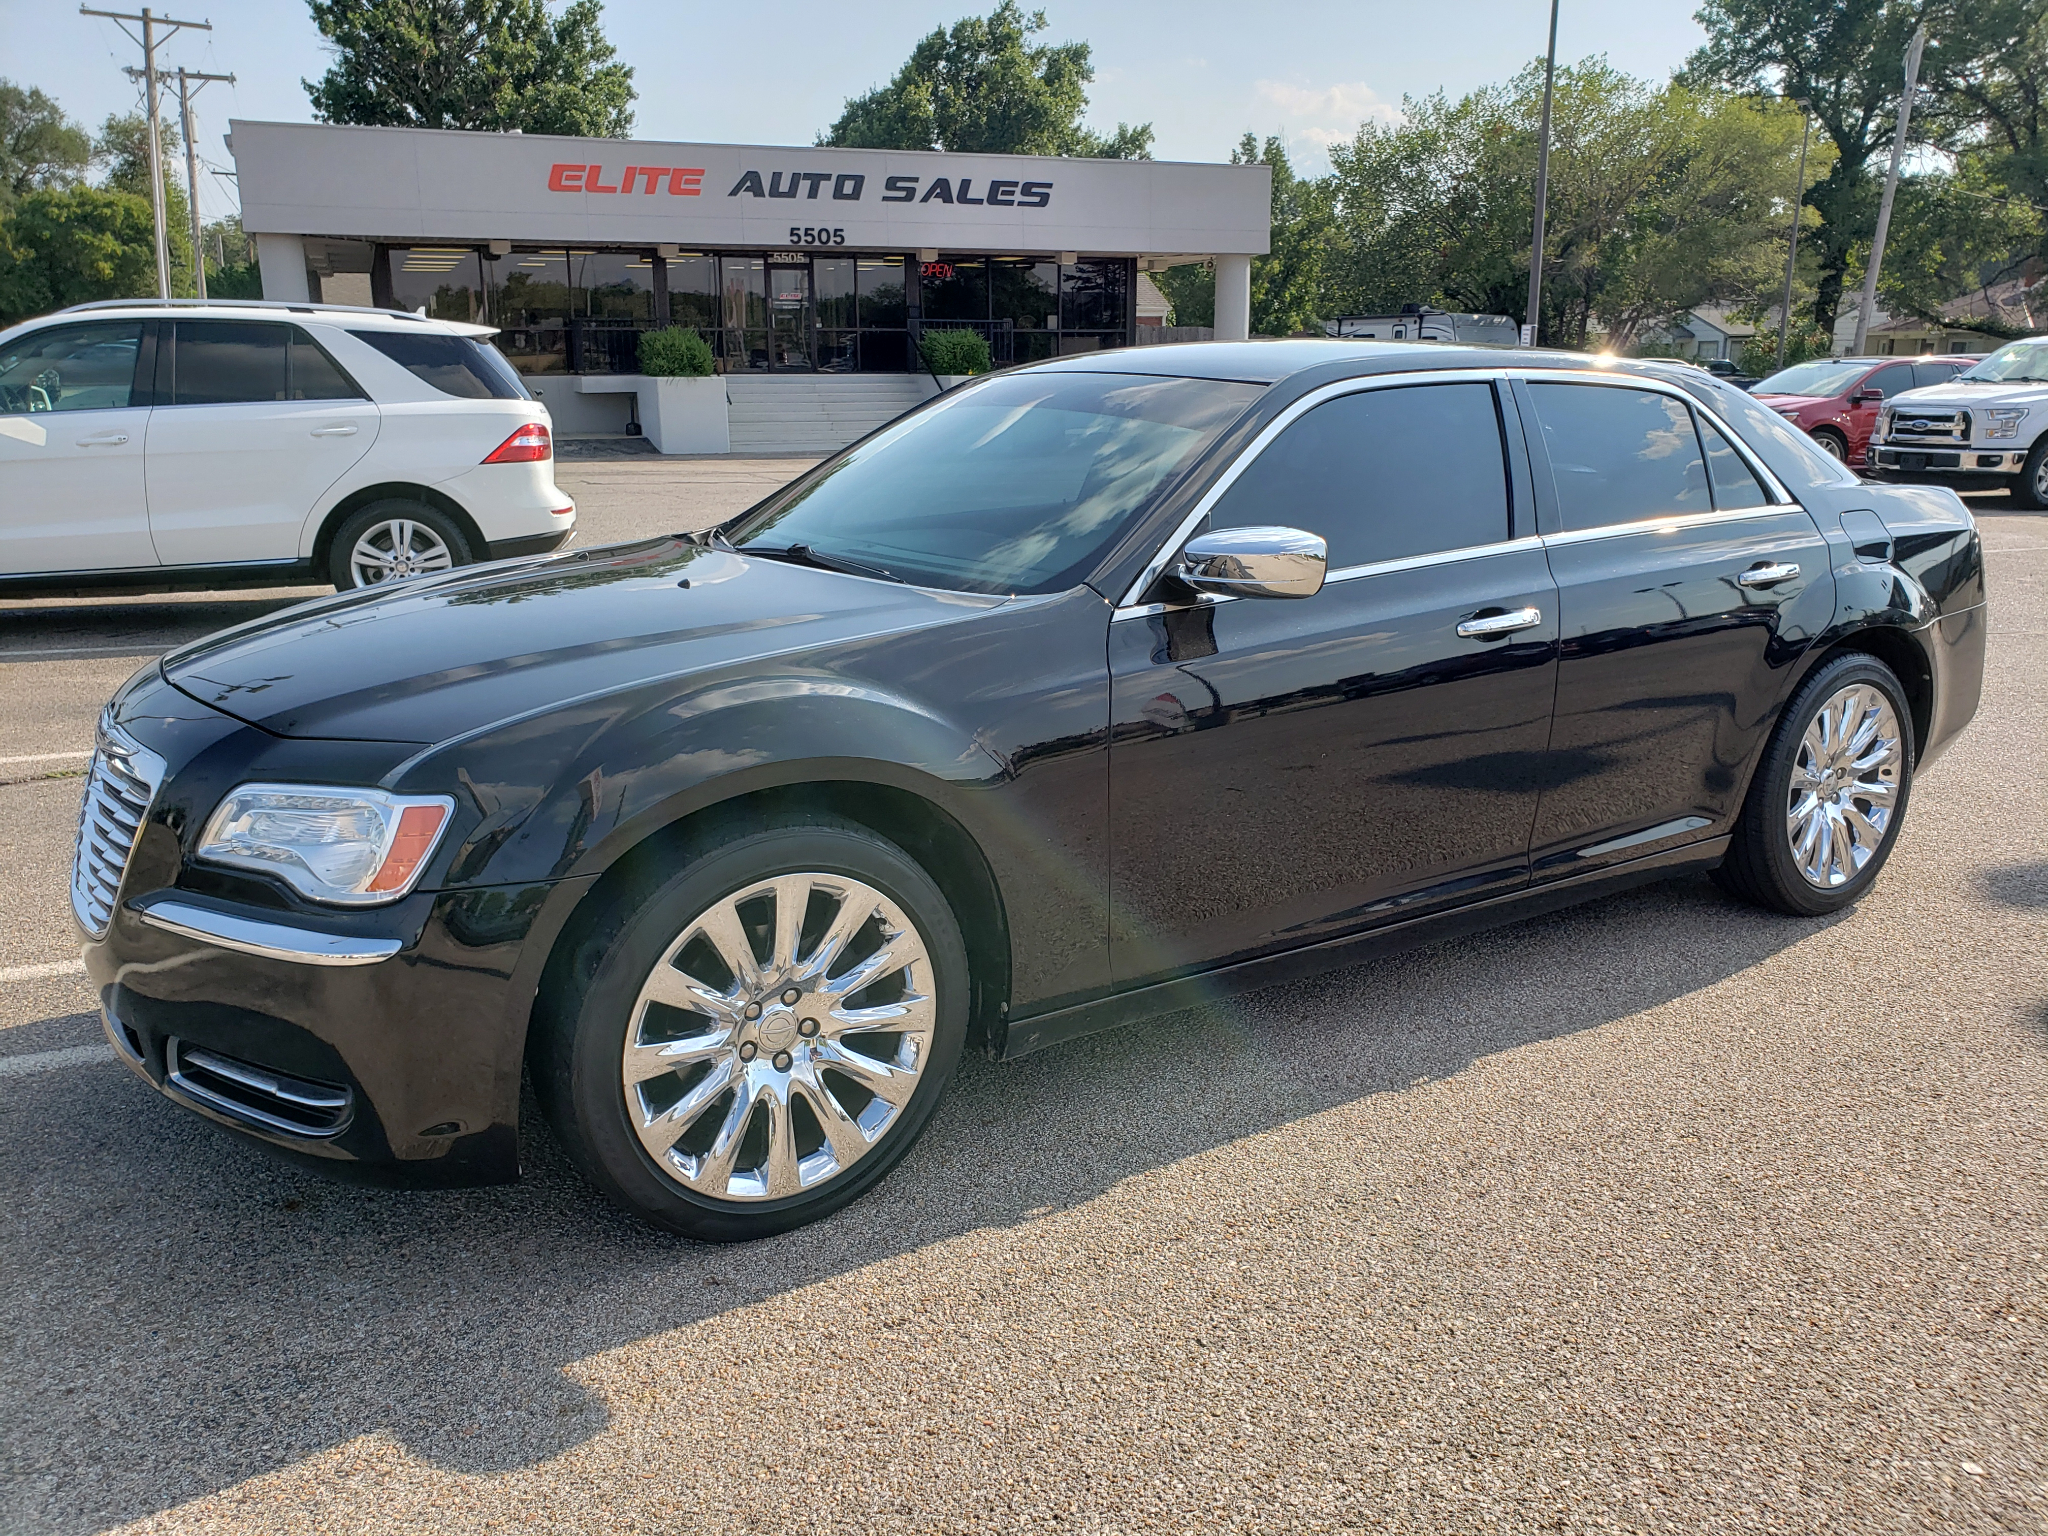 Cars for Sale Near Me Under 300 Beautiful Used 2014 Chrysler 300 In Wichita Ks Auto